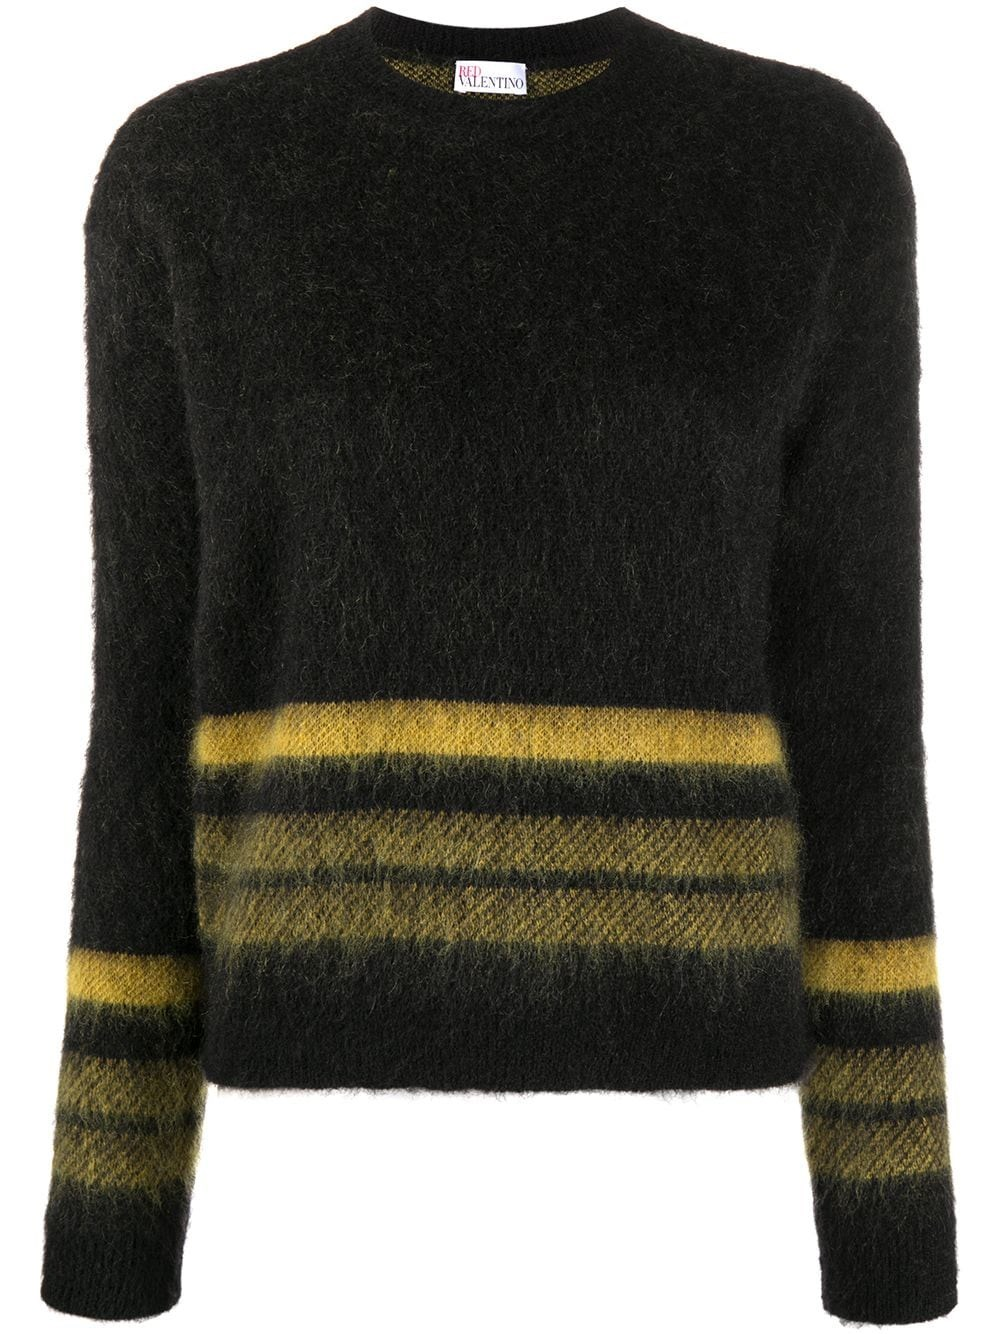 REDVALENTINO Wool And Mohair Crewneck Sweater